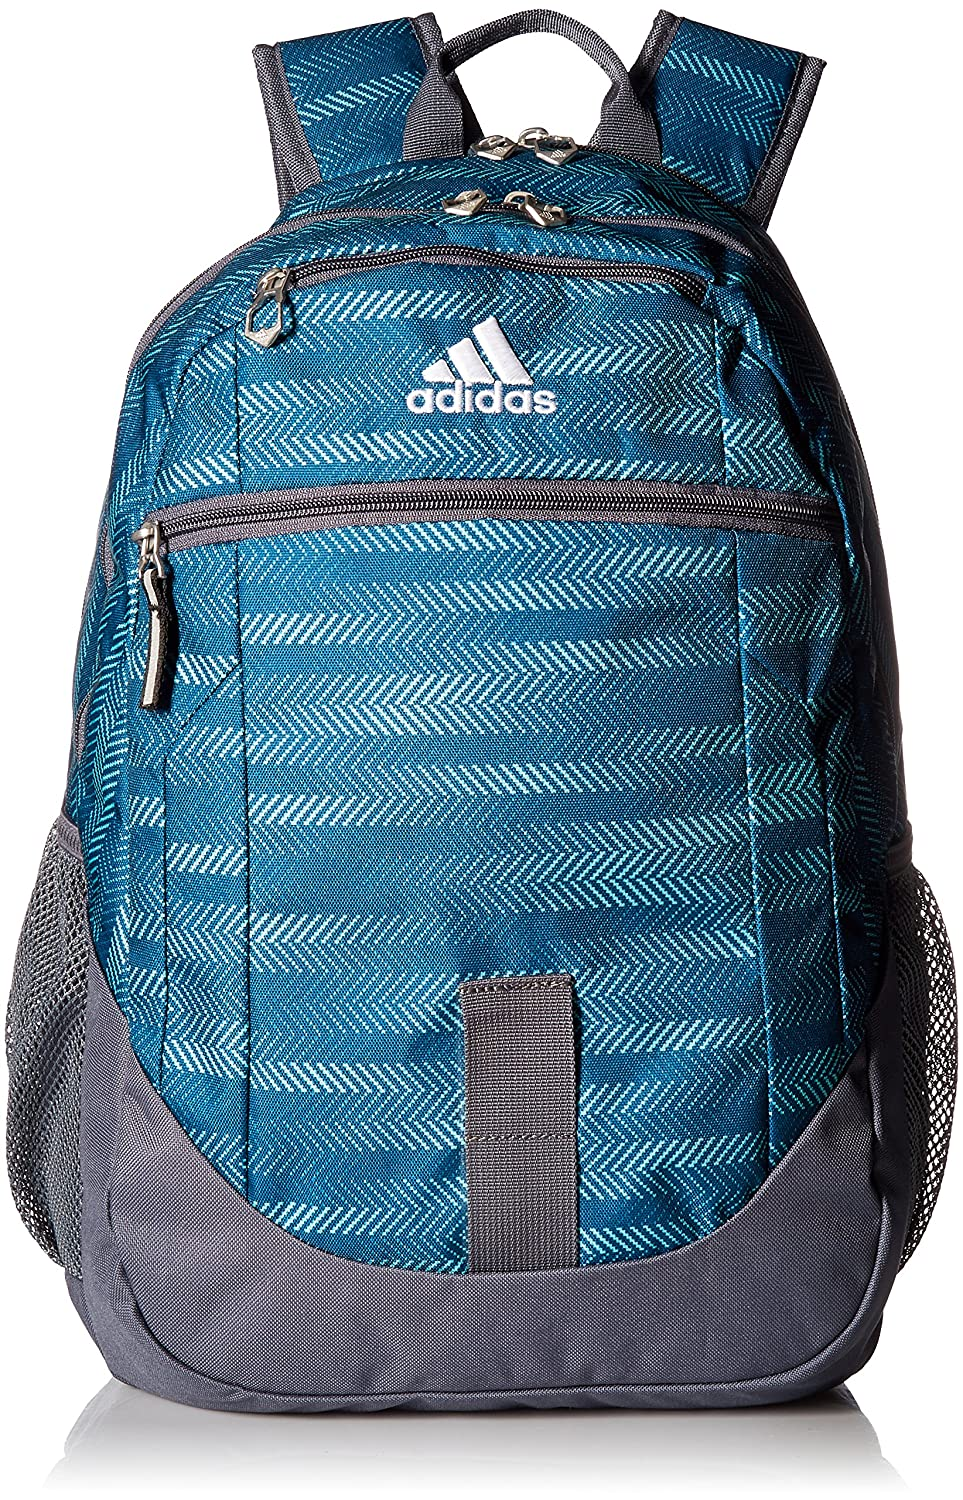 adidas Foundation Backpack Agron Inc (adidas Bags) 976549